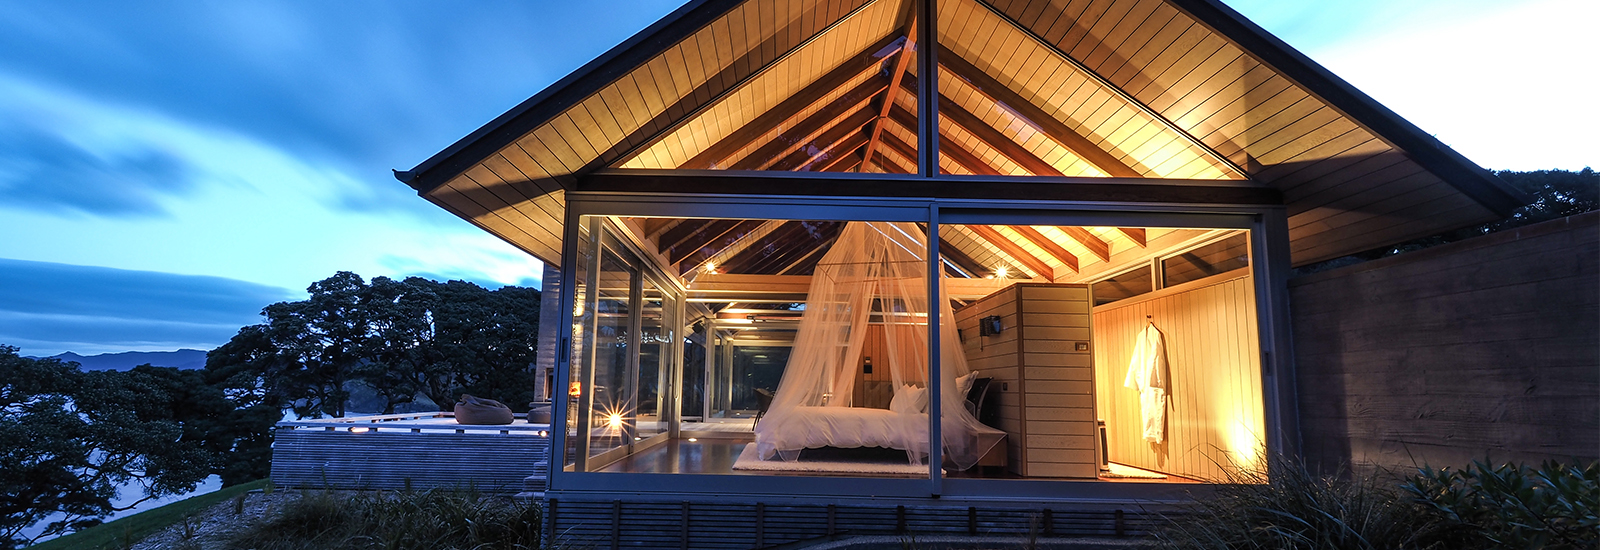 Glasshouse Luxury accommodation Whangarei Heads